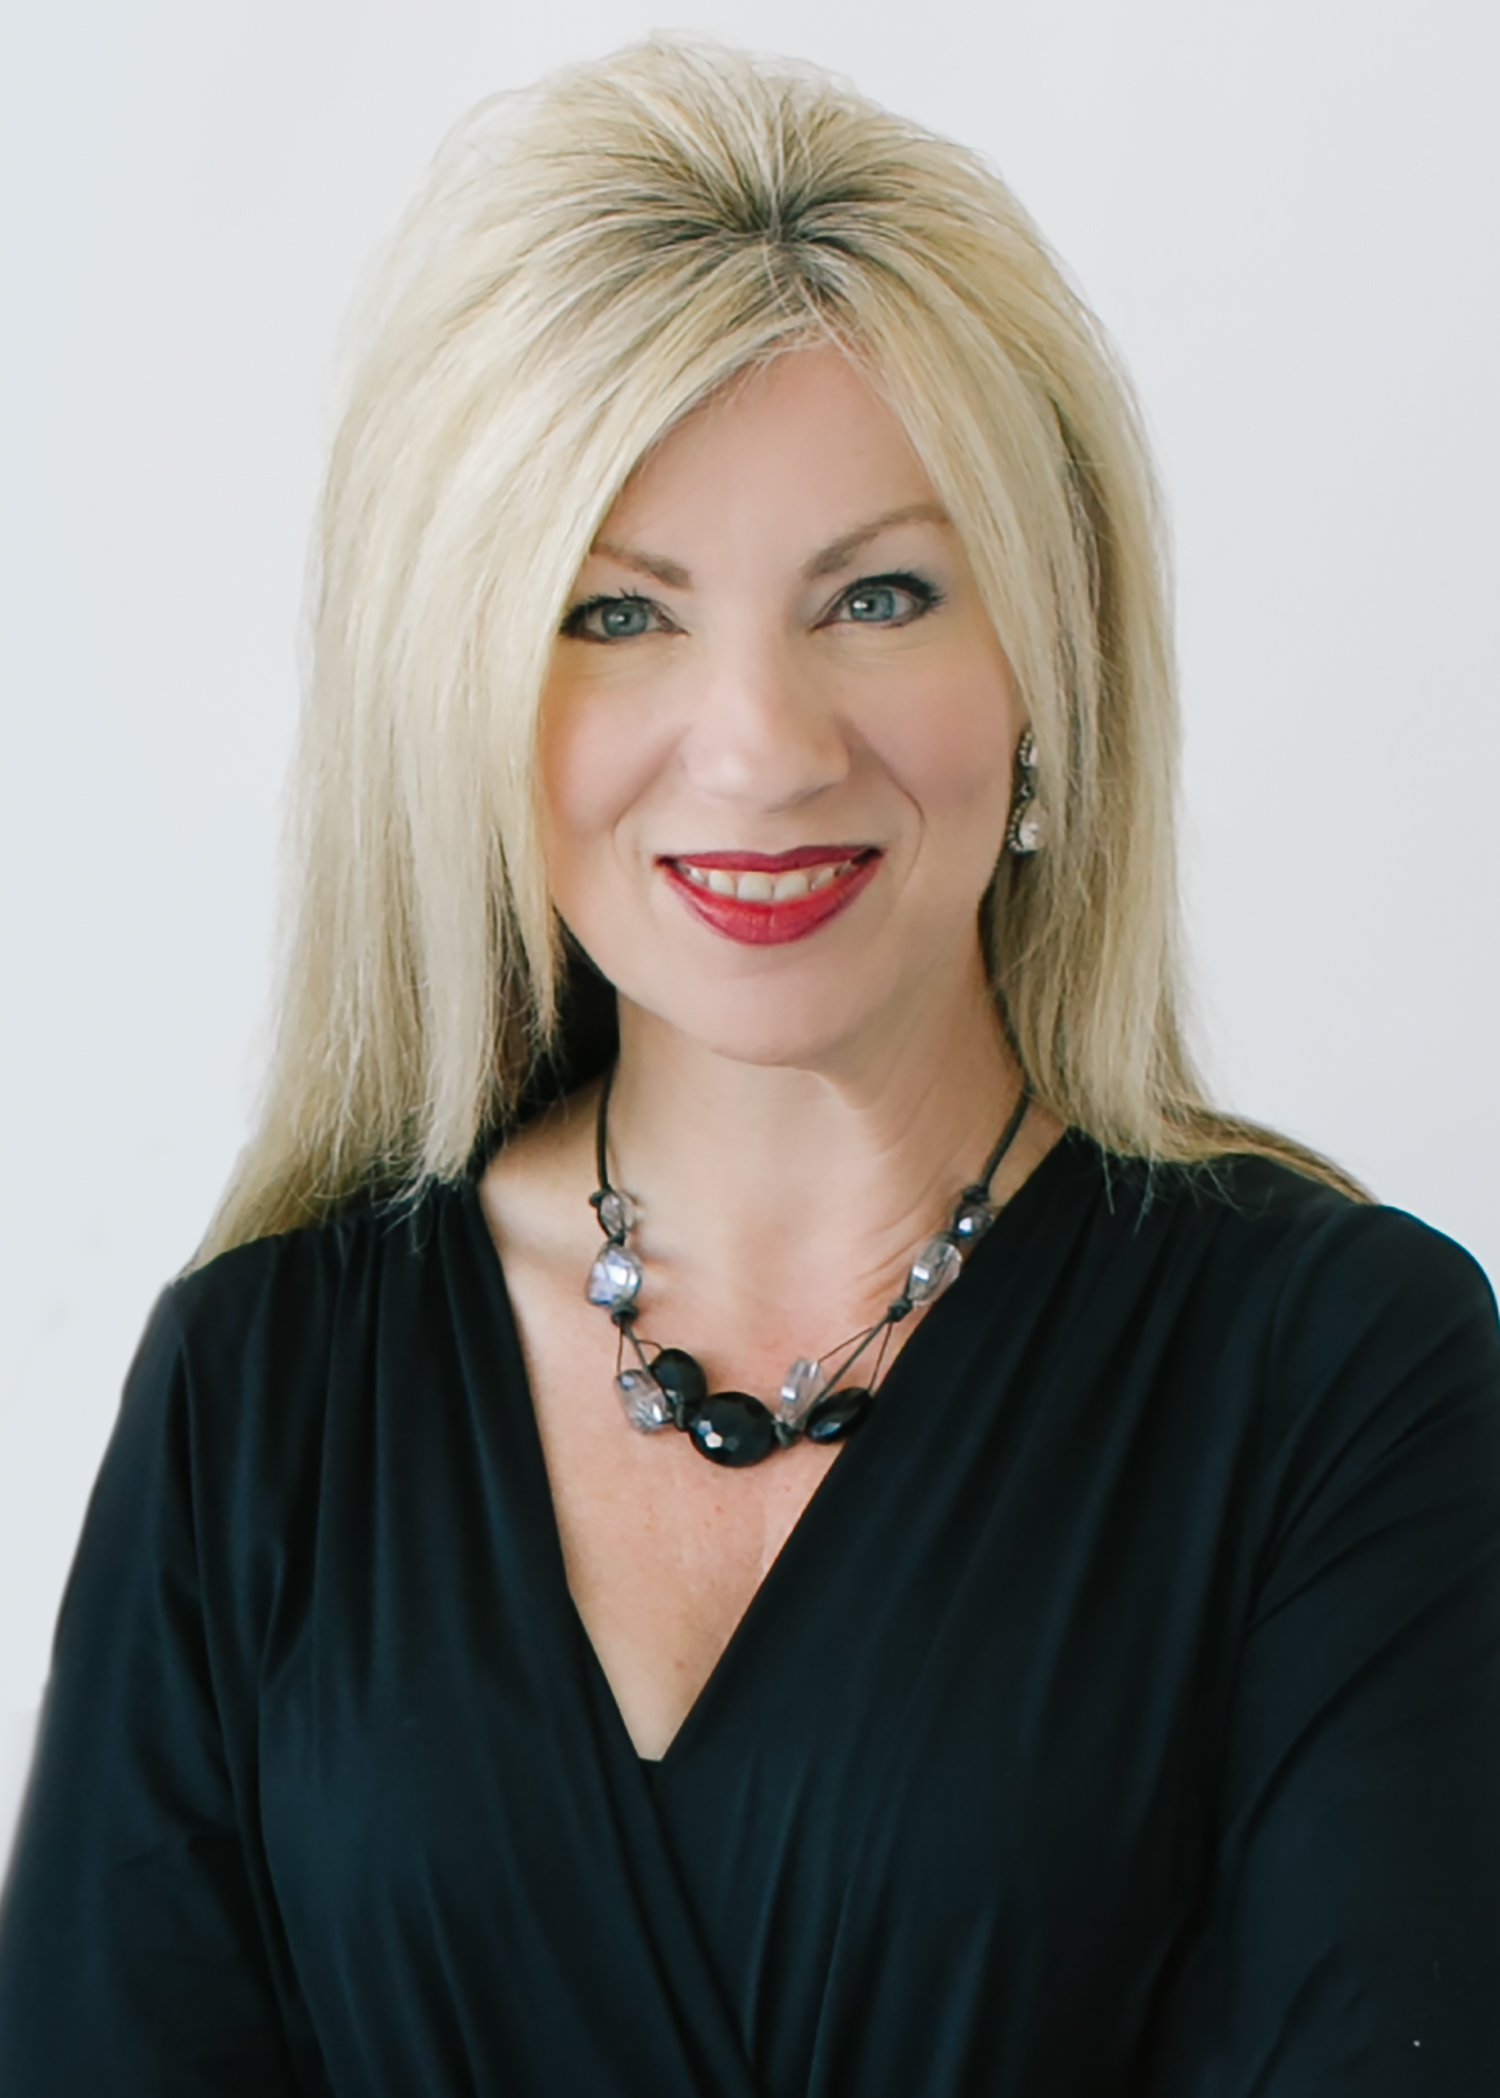 Realtors Near Me >> Suzanne Powers | Agent Profile | Powers Realty Group